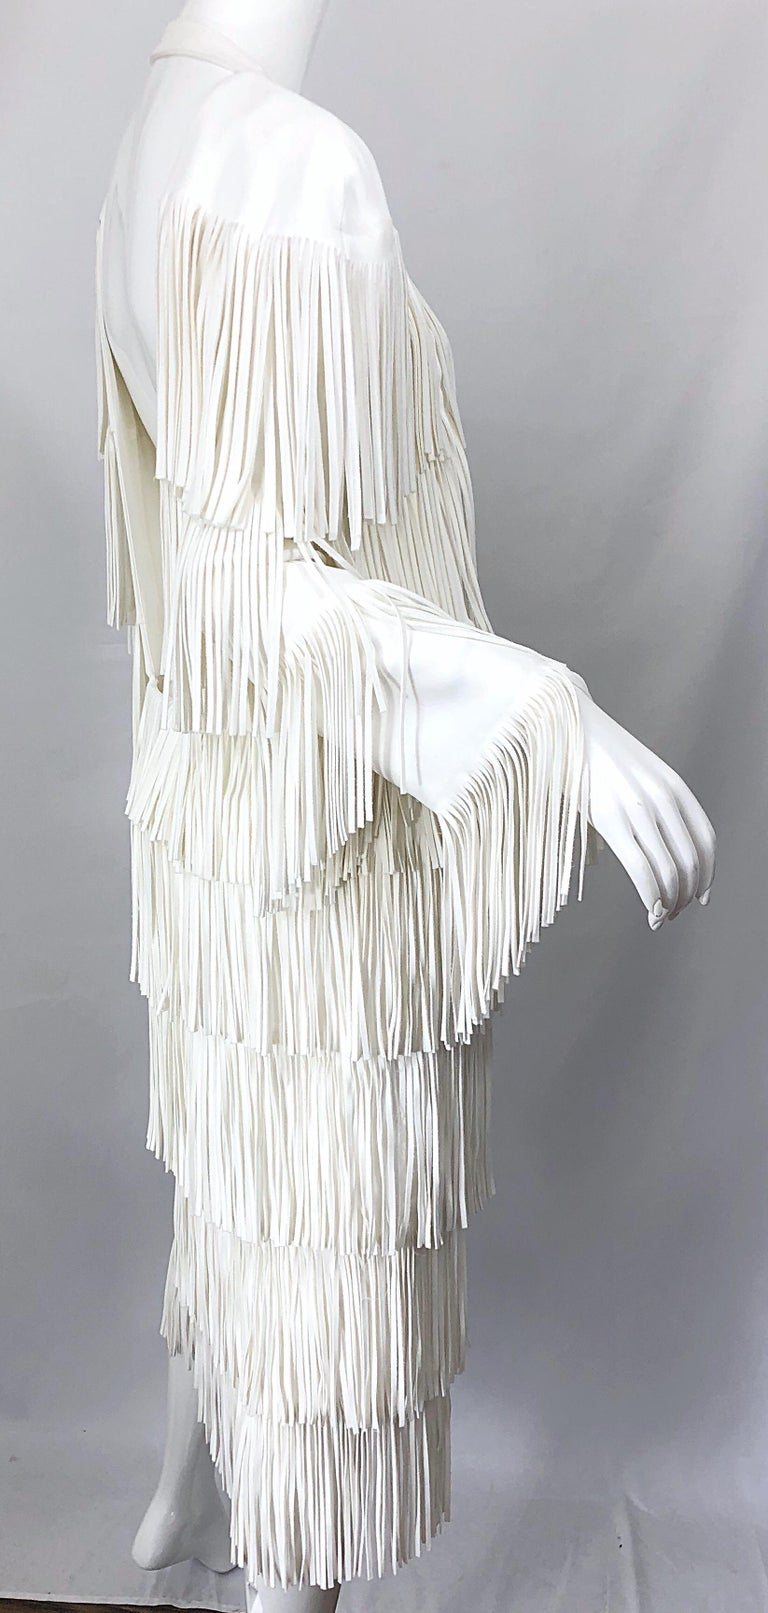 NWT Tom Ford $7,000 Runway Fall 2015 Size 42 / 8 White Open Back Fringe Dress For Sale 10